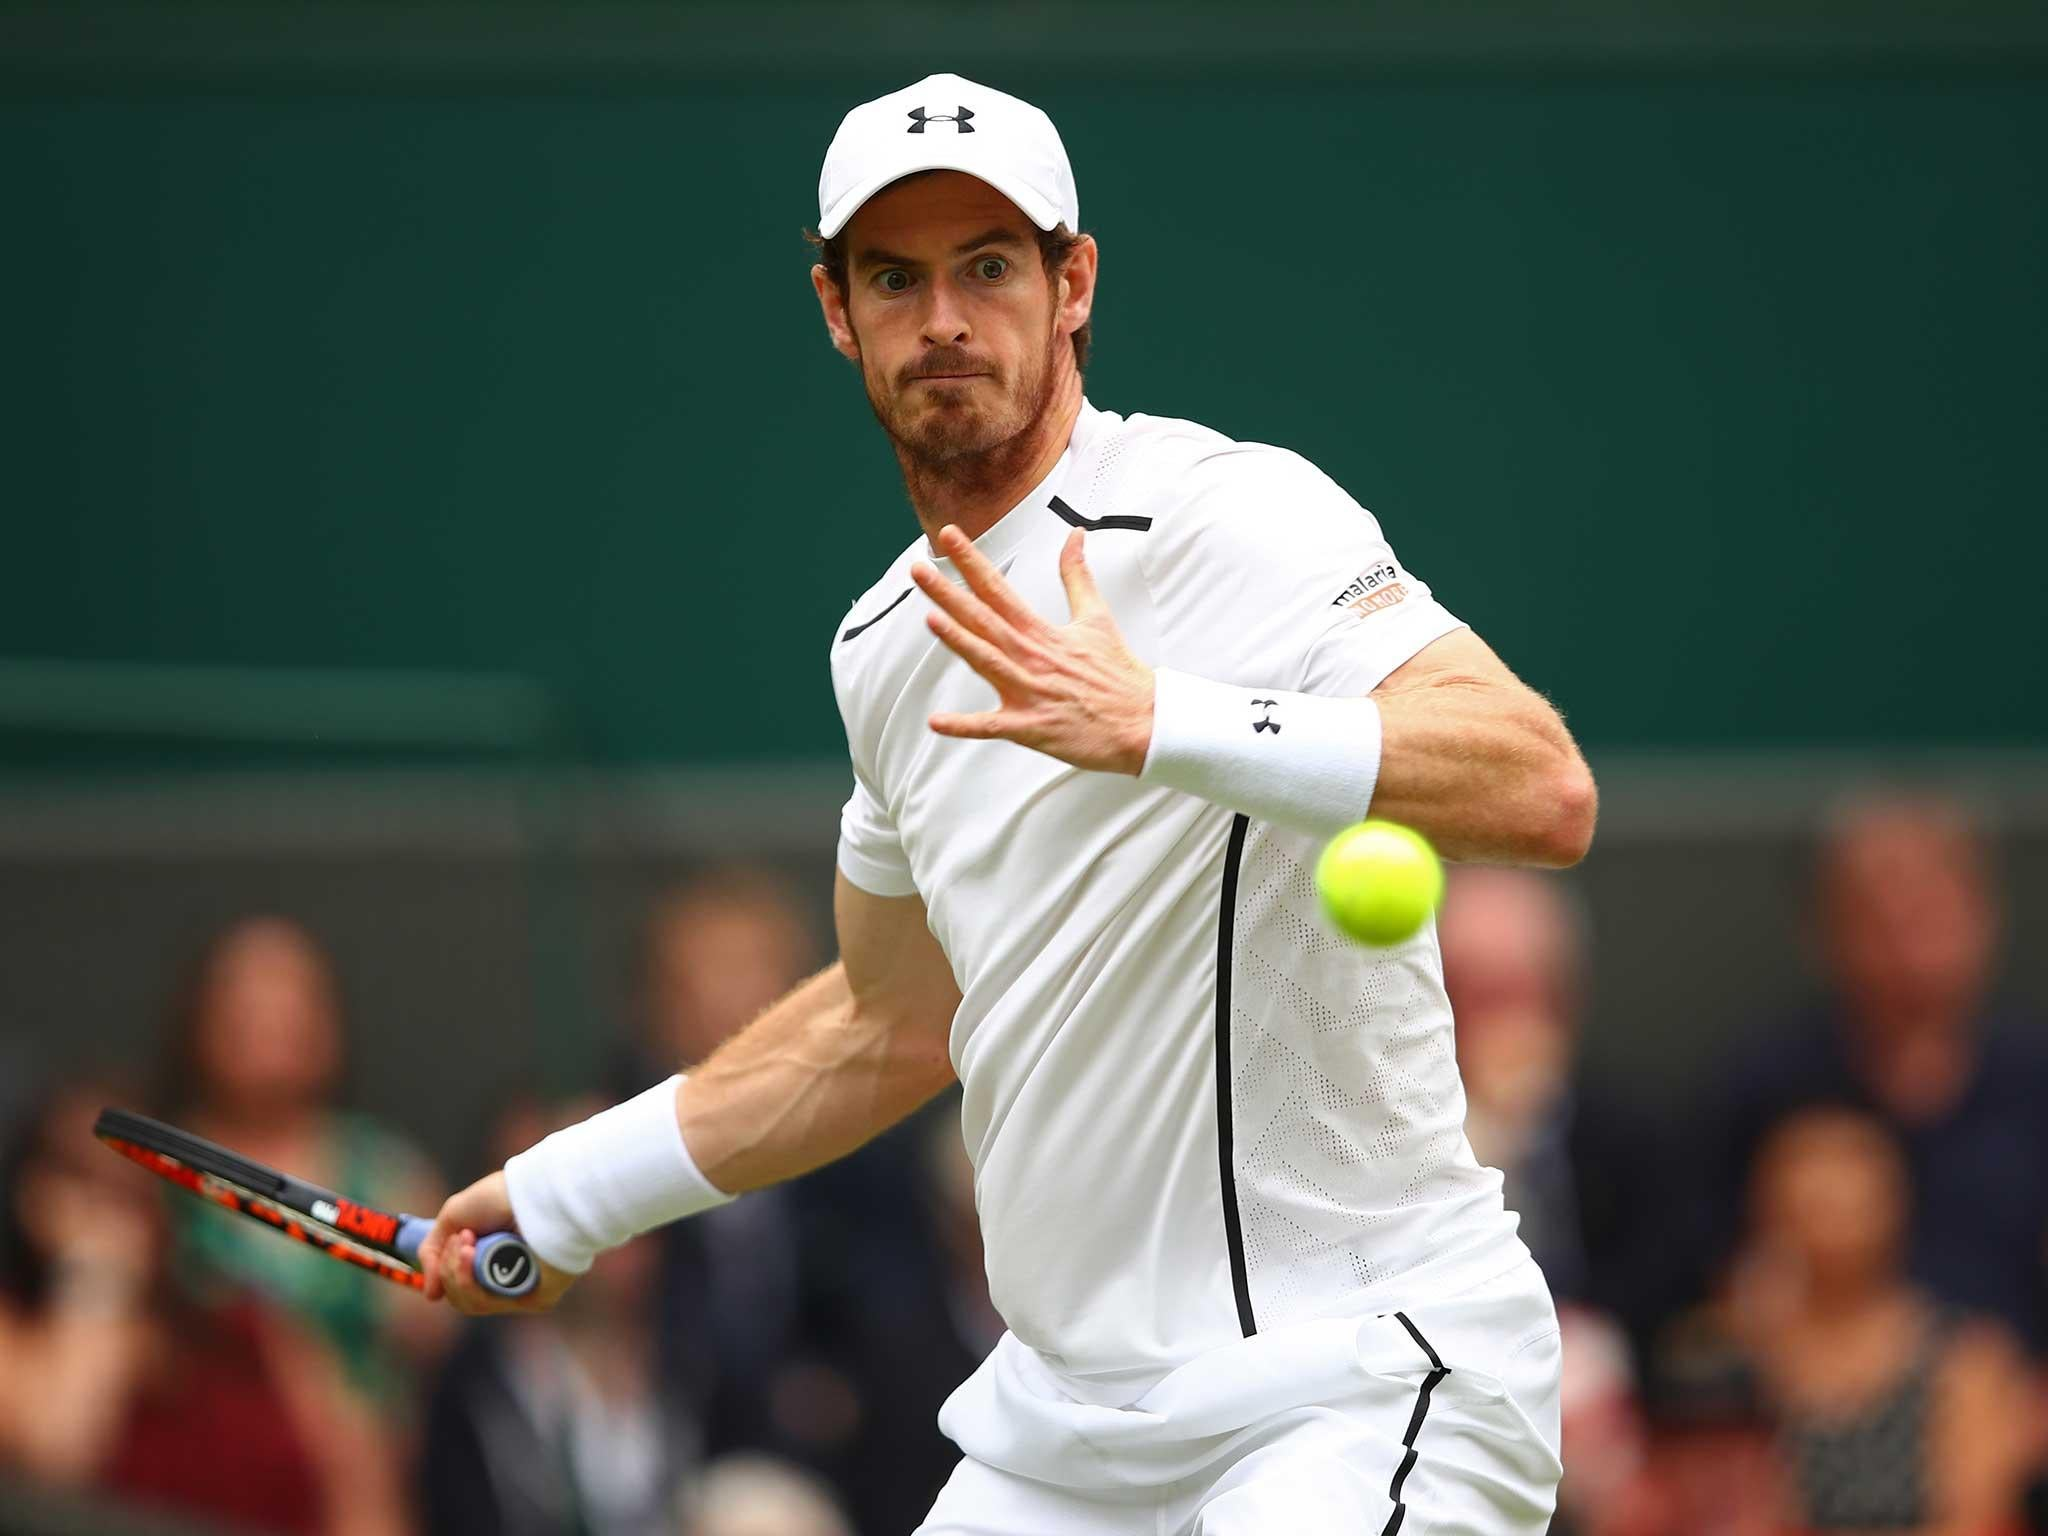 Andy murray twitter - Murray Earns Straight Sets Victory Over Millman To Reach Fourth Round